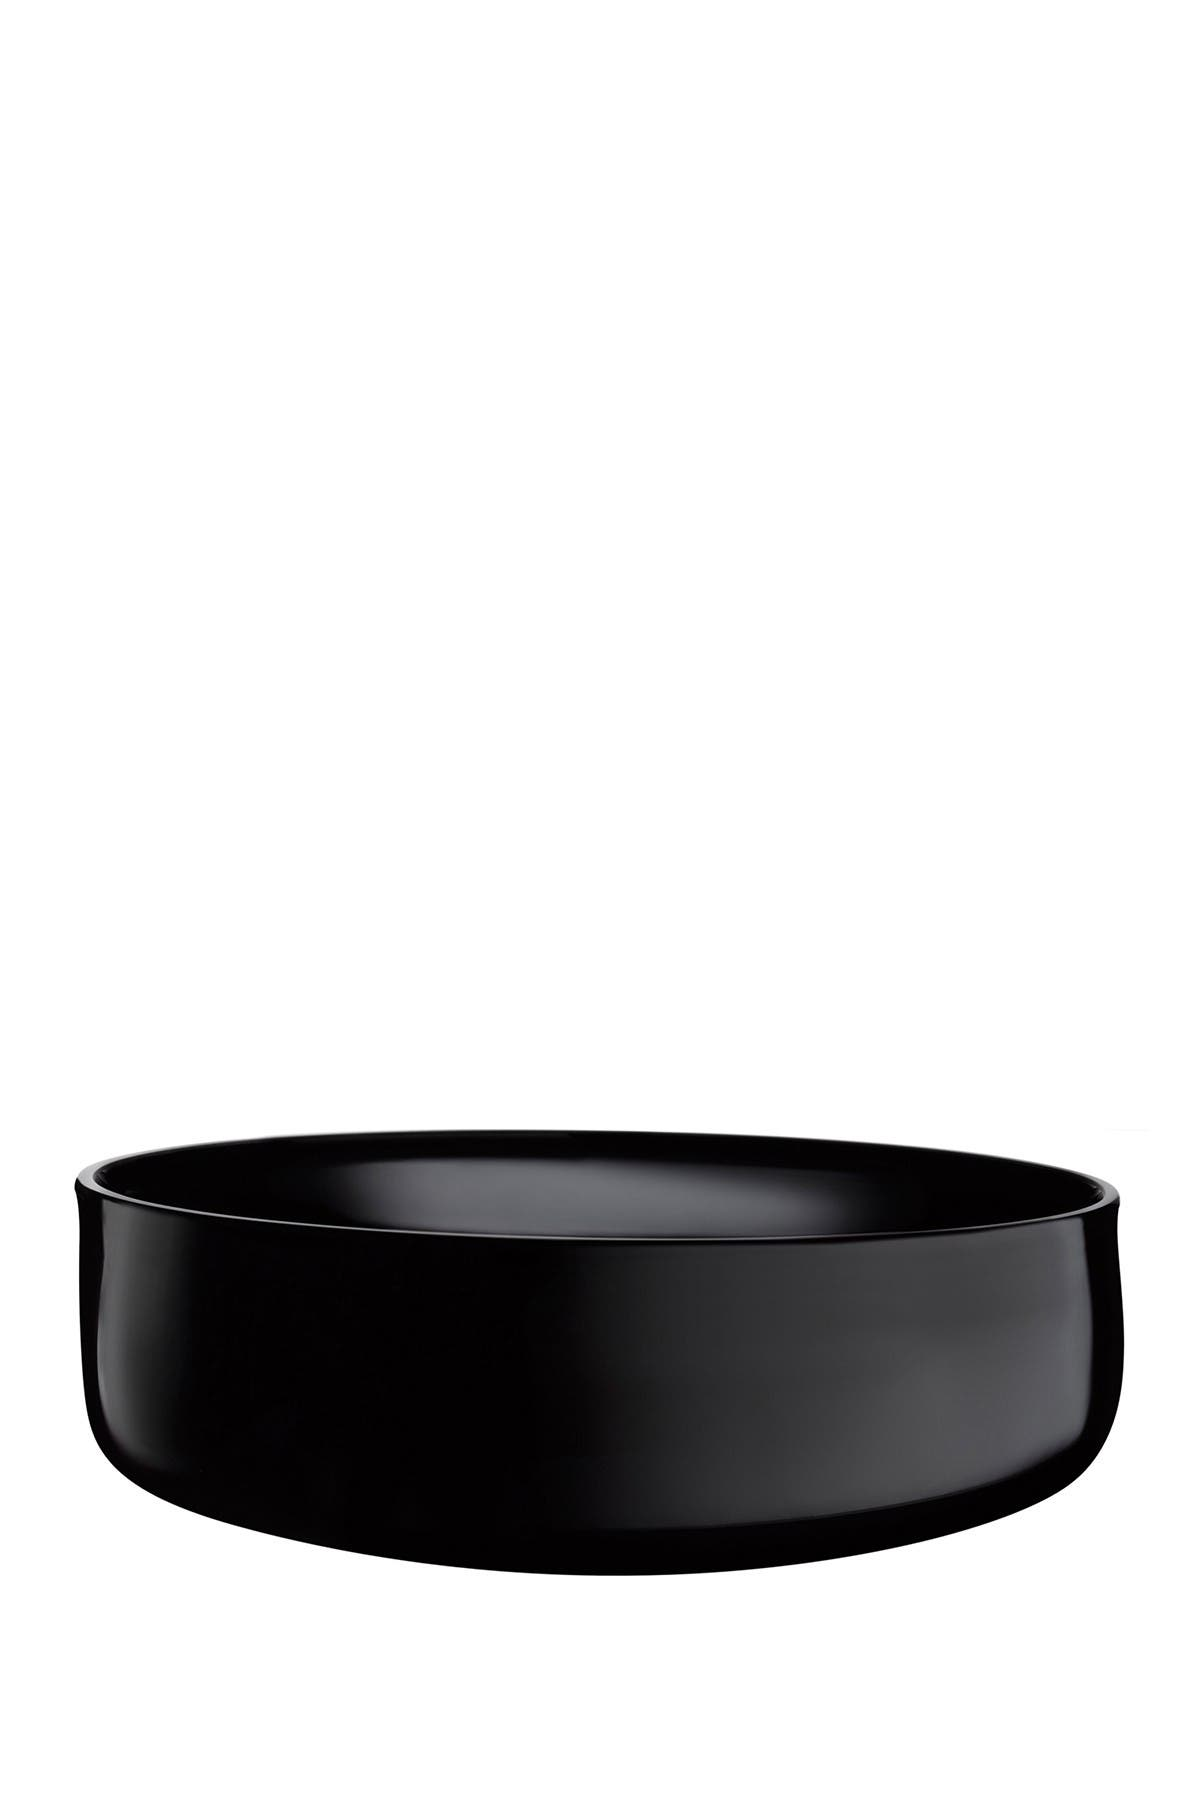 Image of Nude Glass Midnight Bowl - Large - Black